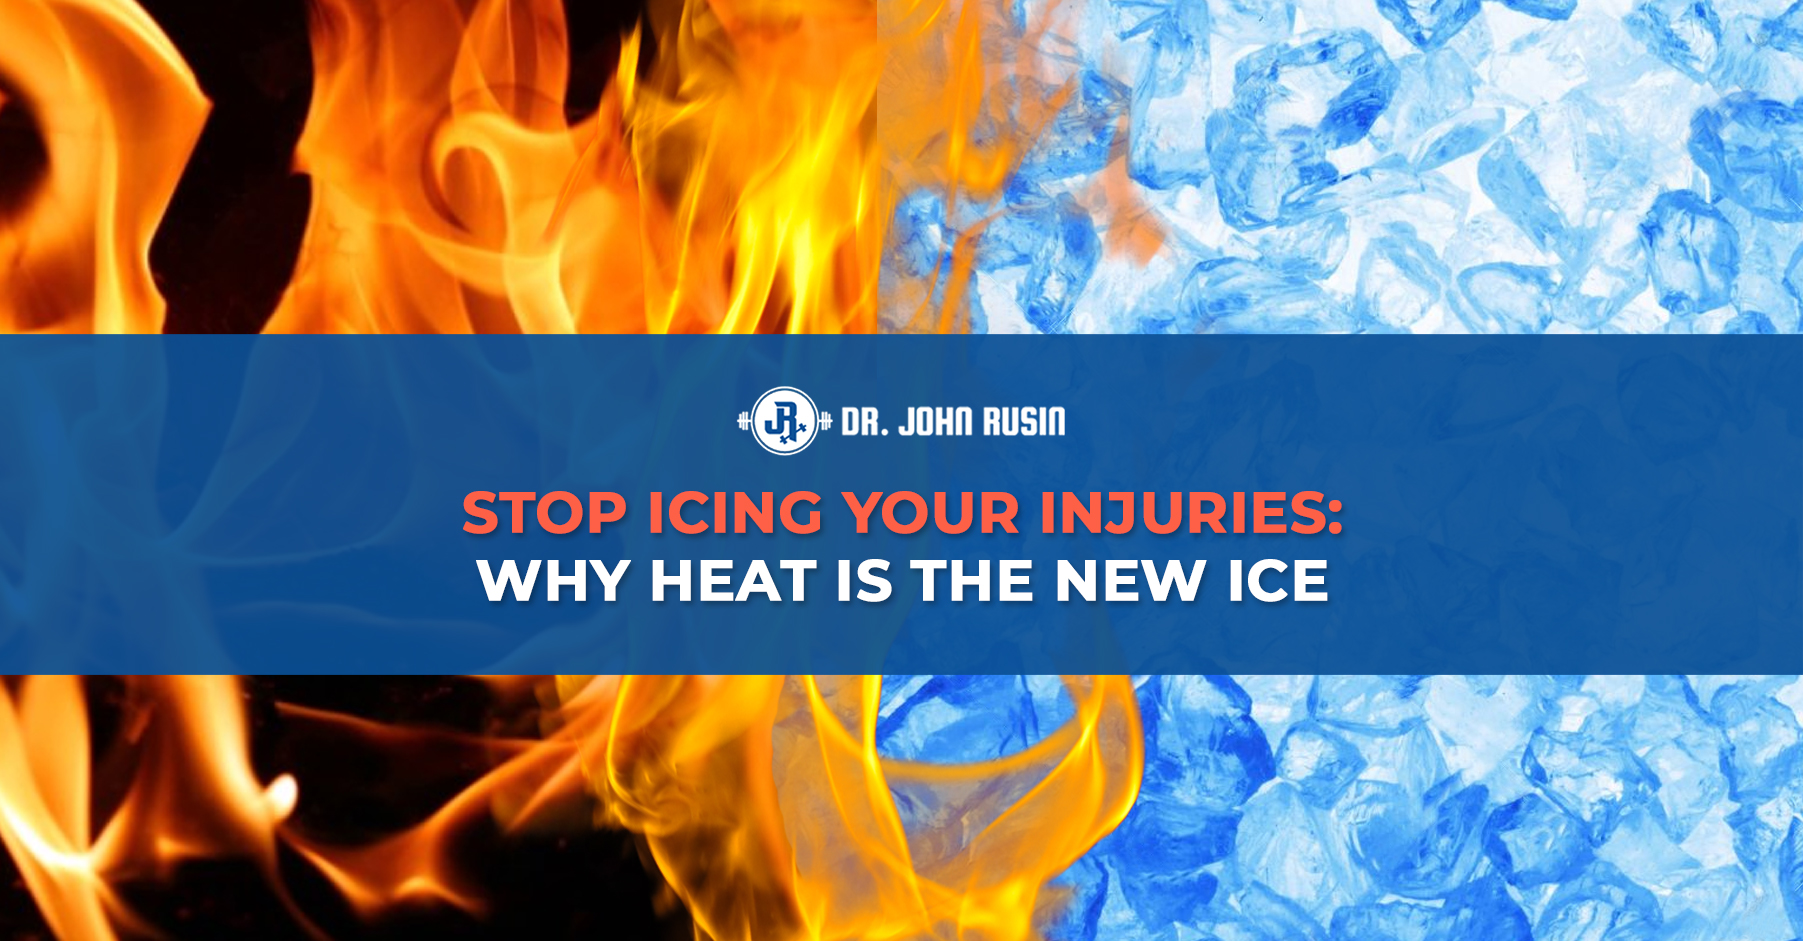 heat is the new ice